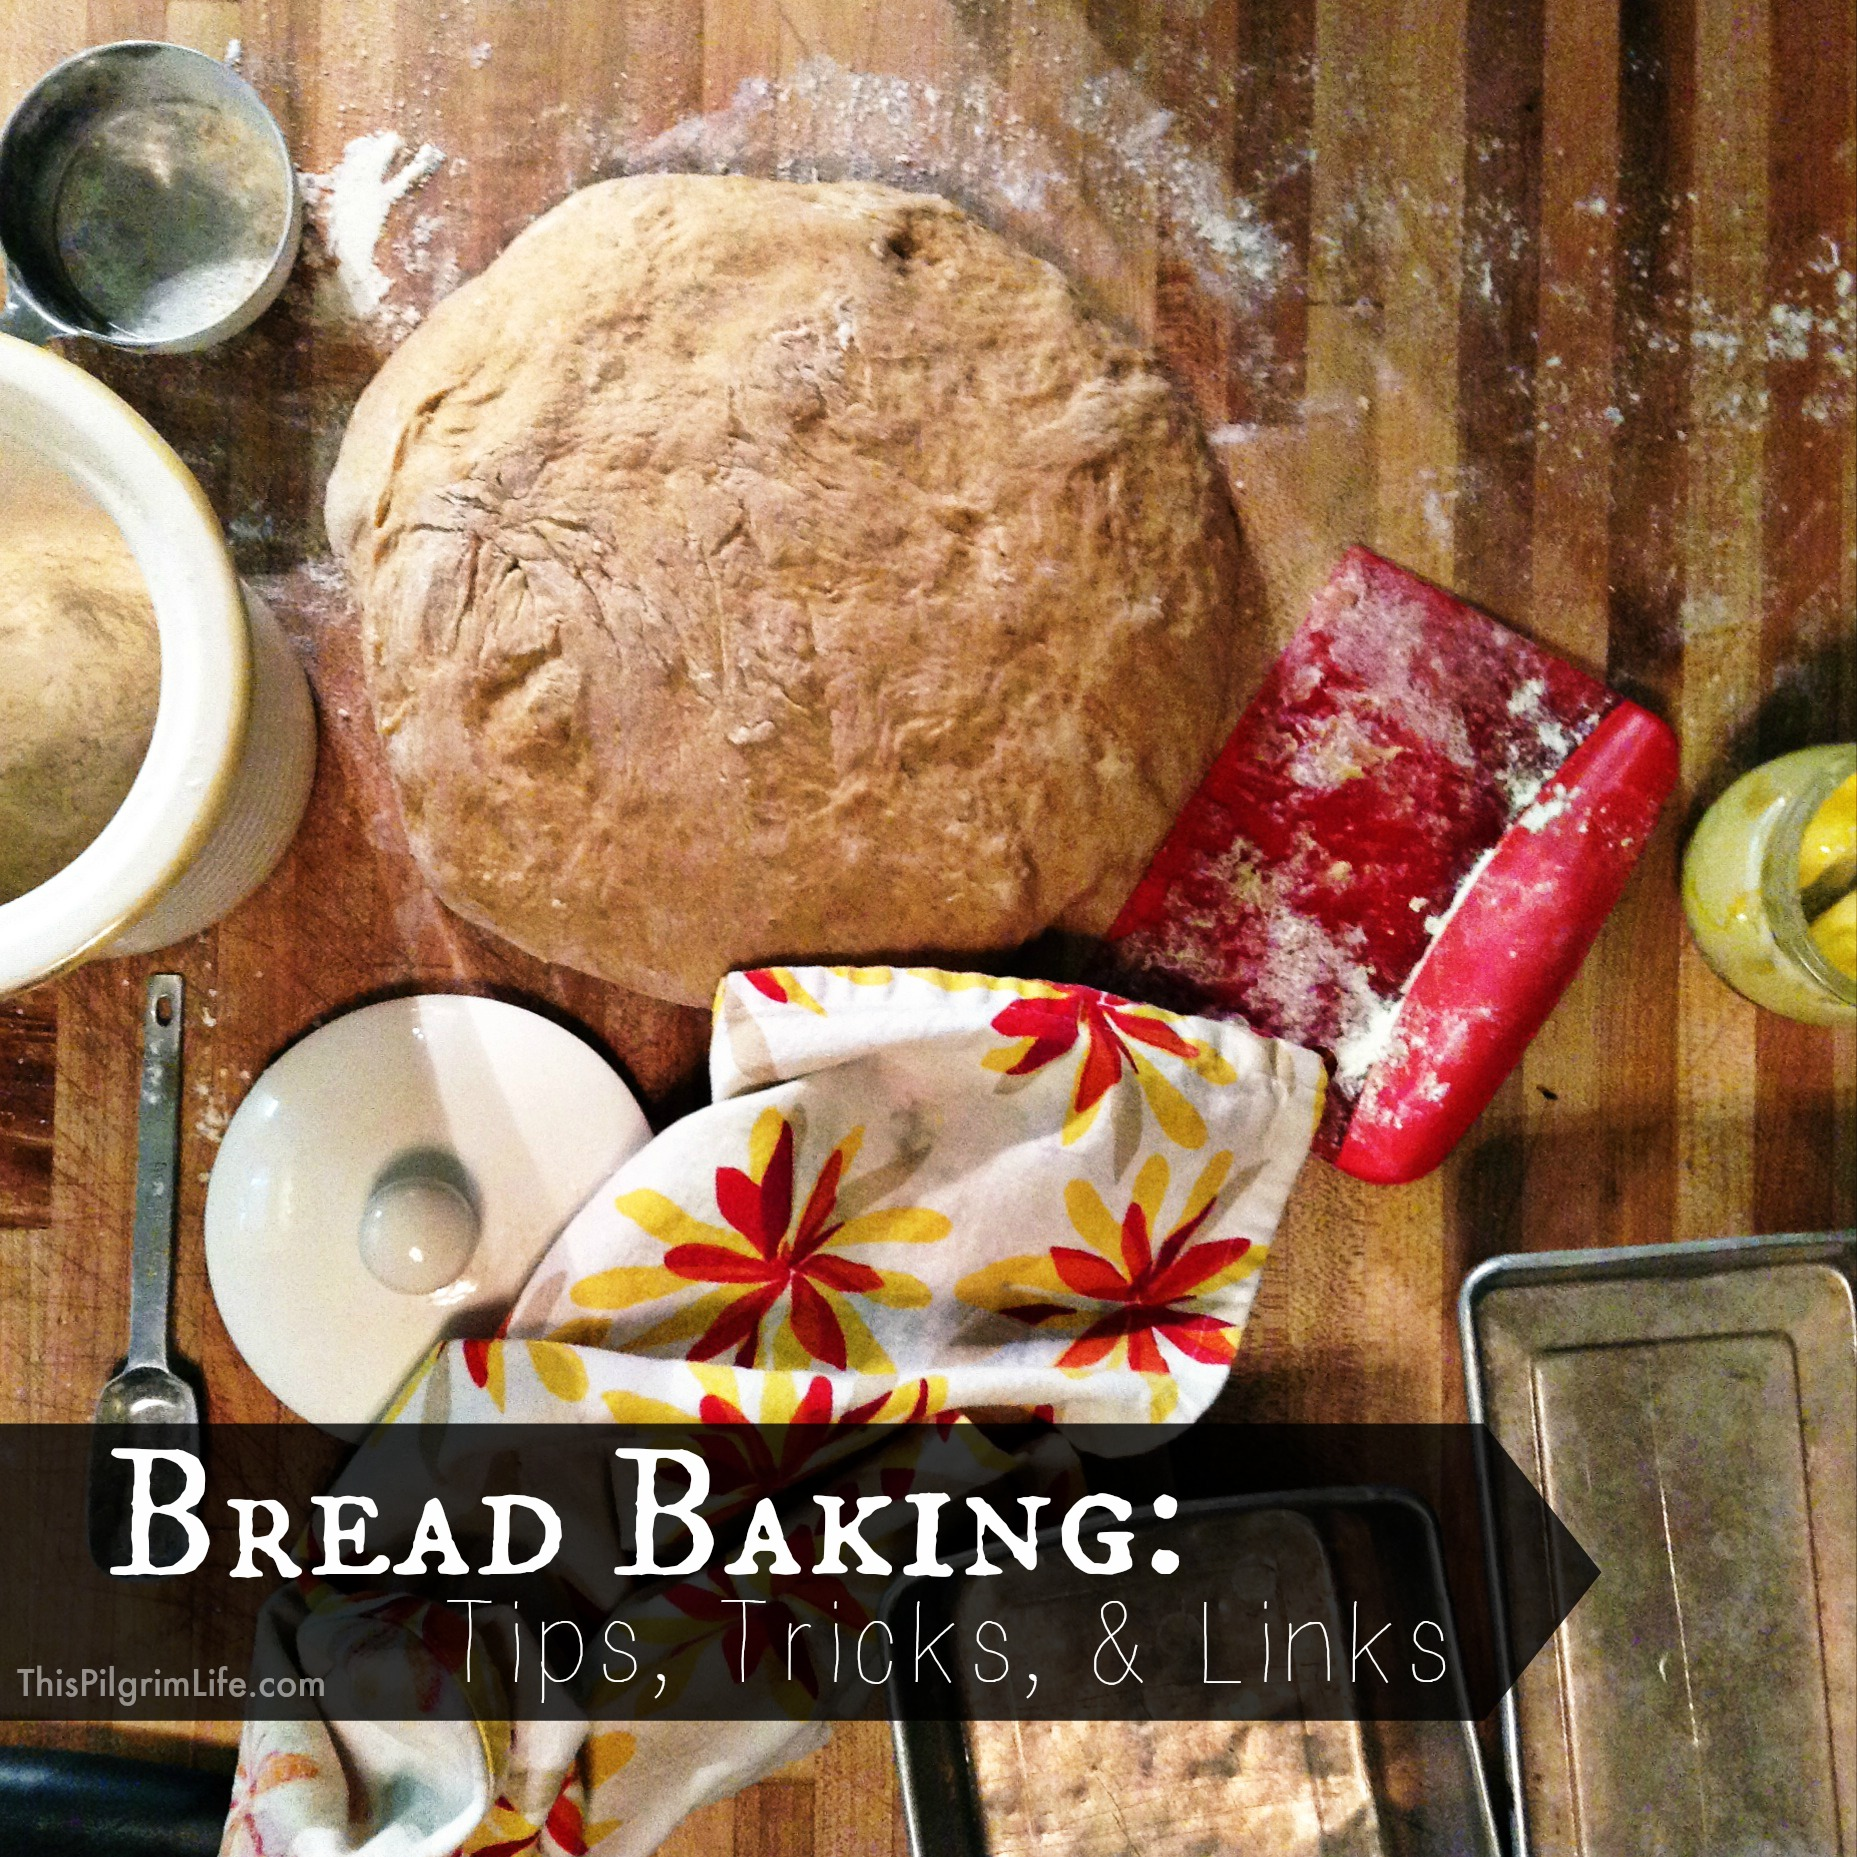 Bread Baking- Tips, Tricks & Links